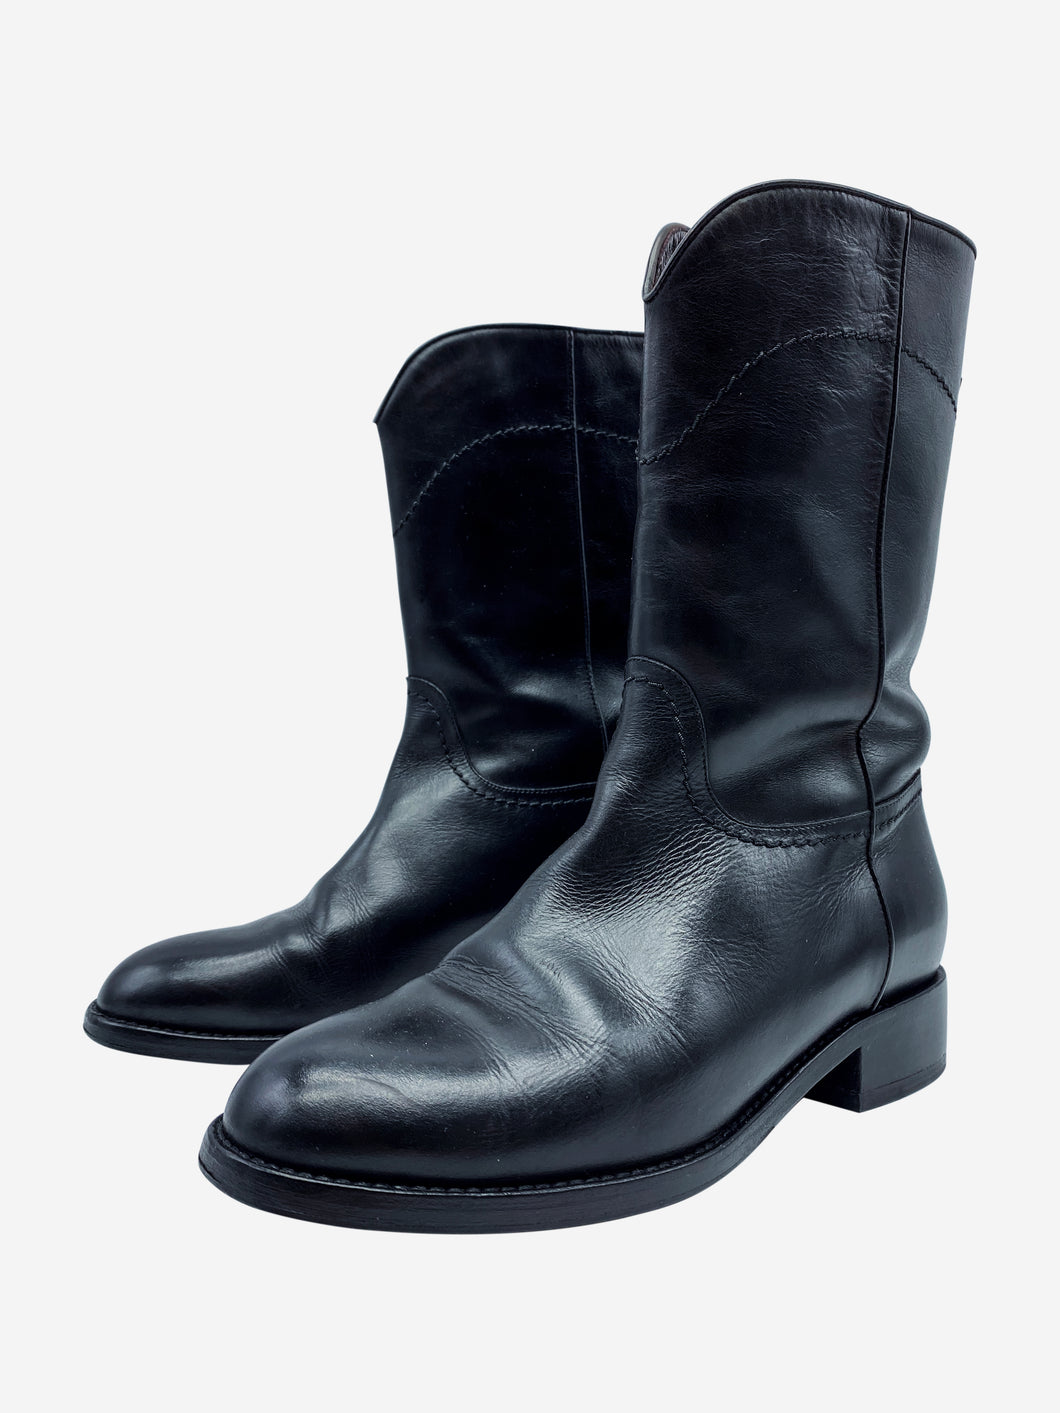 Black pull-on leather boots with CC logo - size EU 37